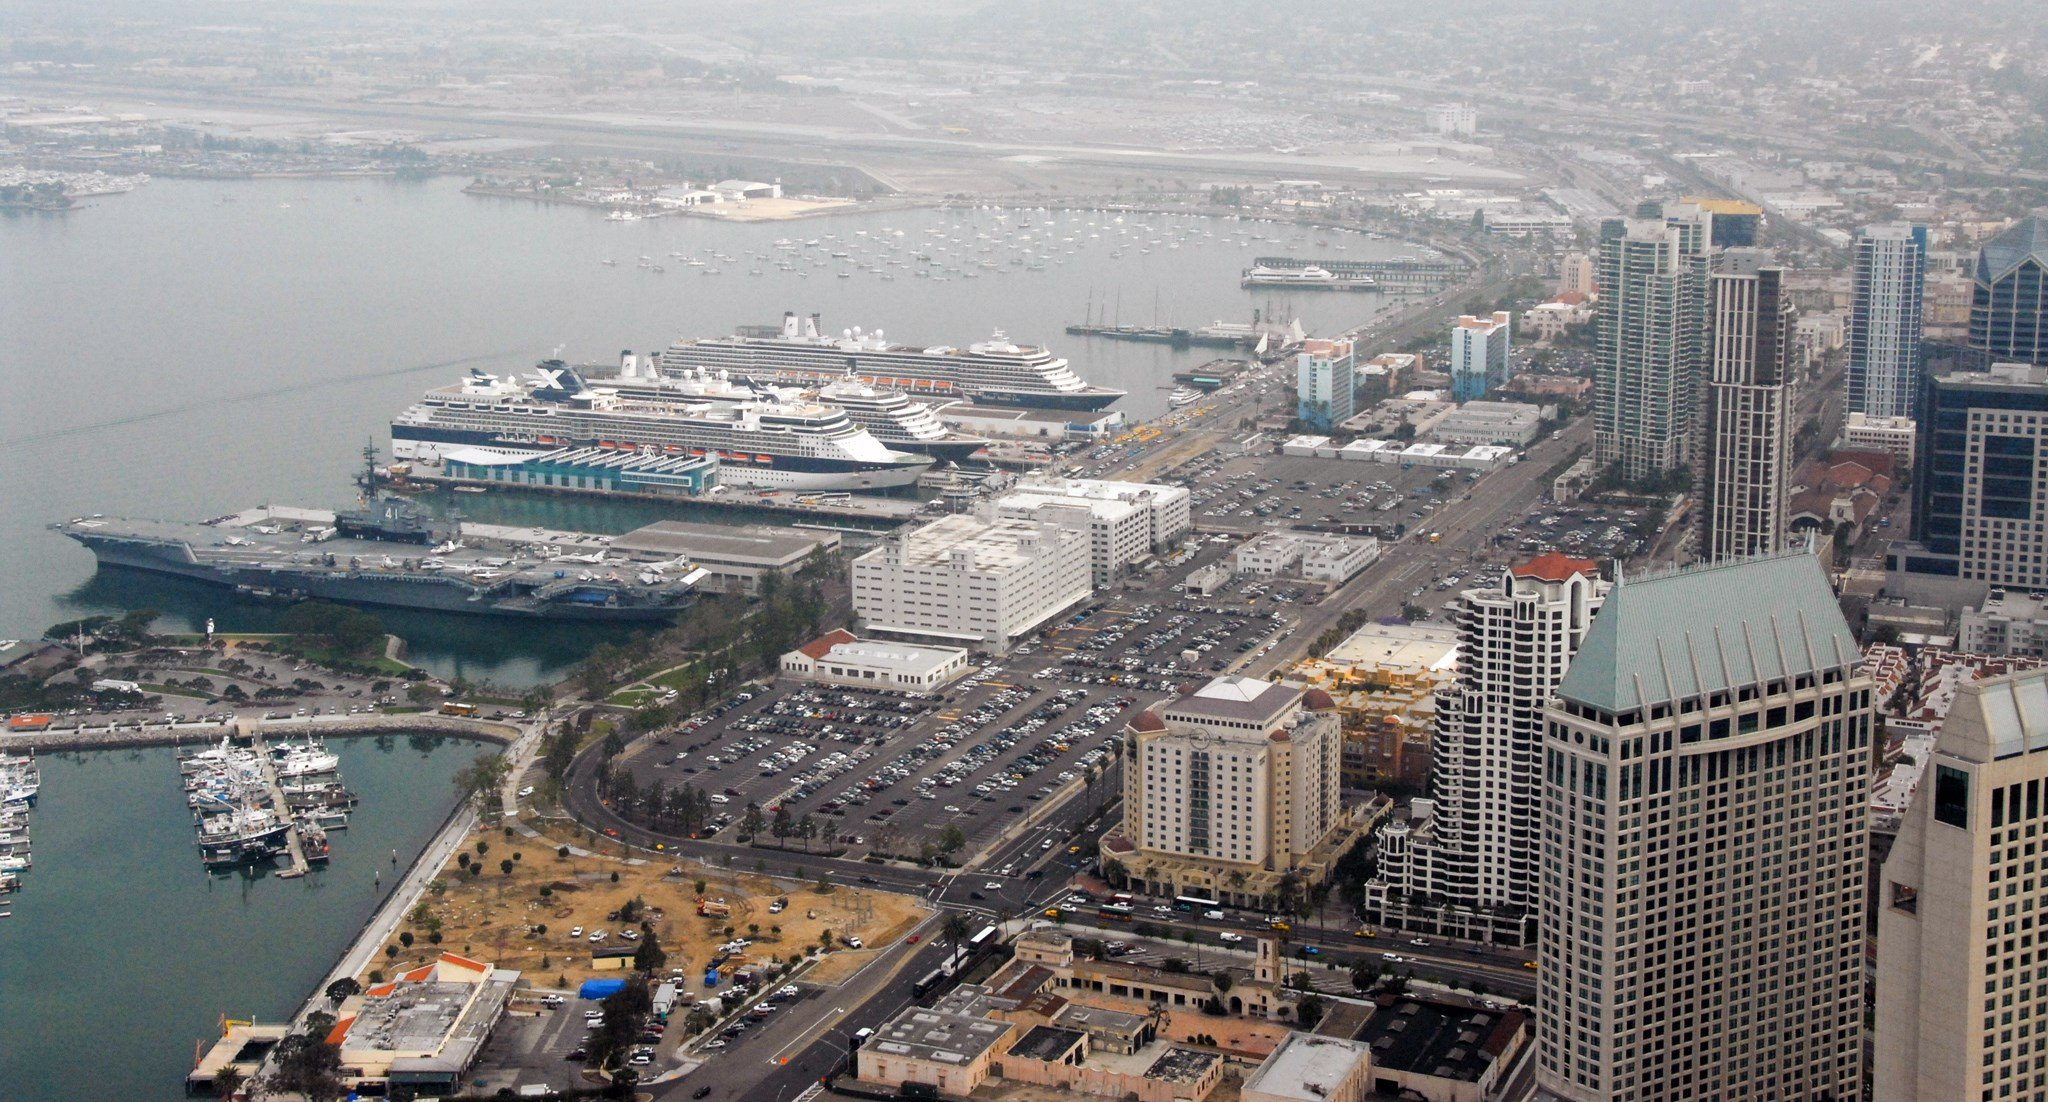 (Source: Port of San Diego)